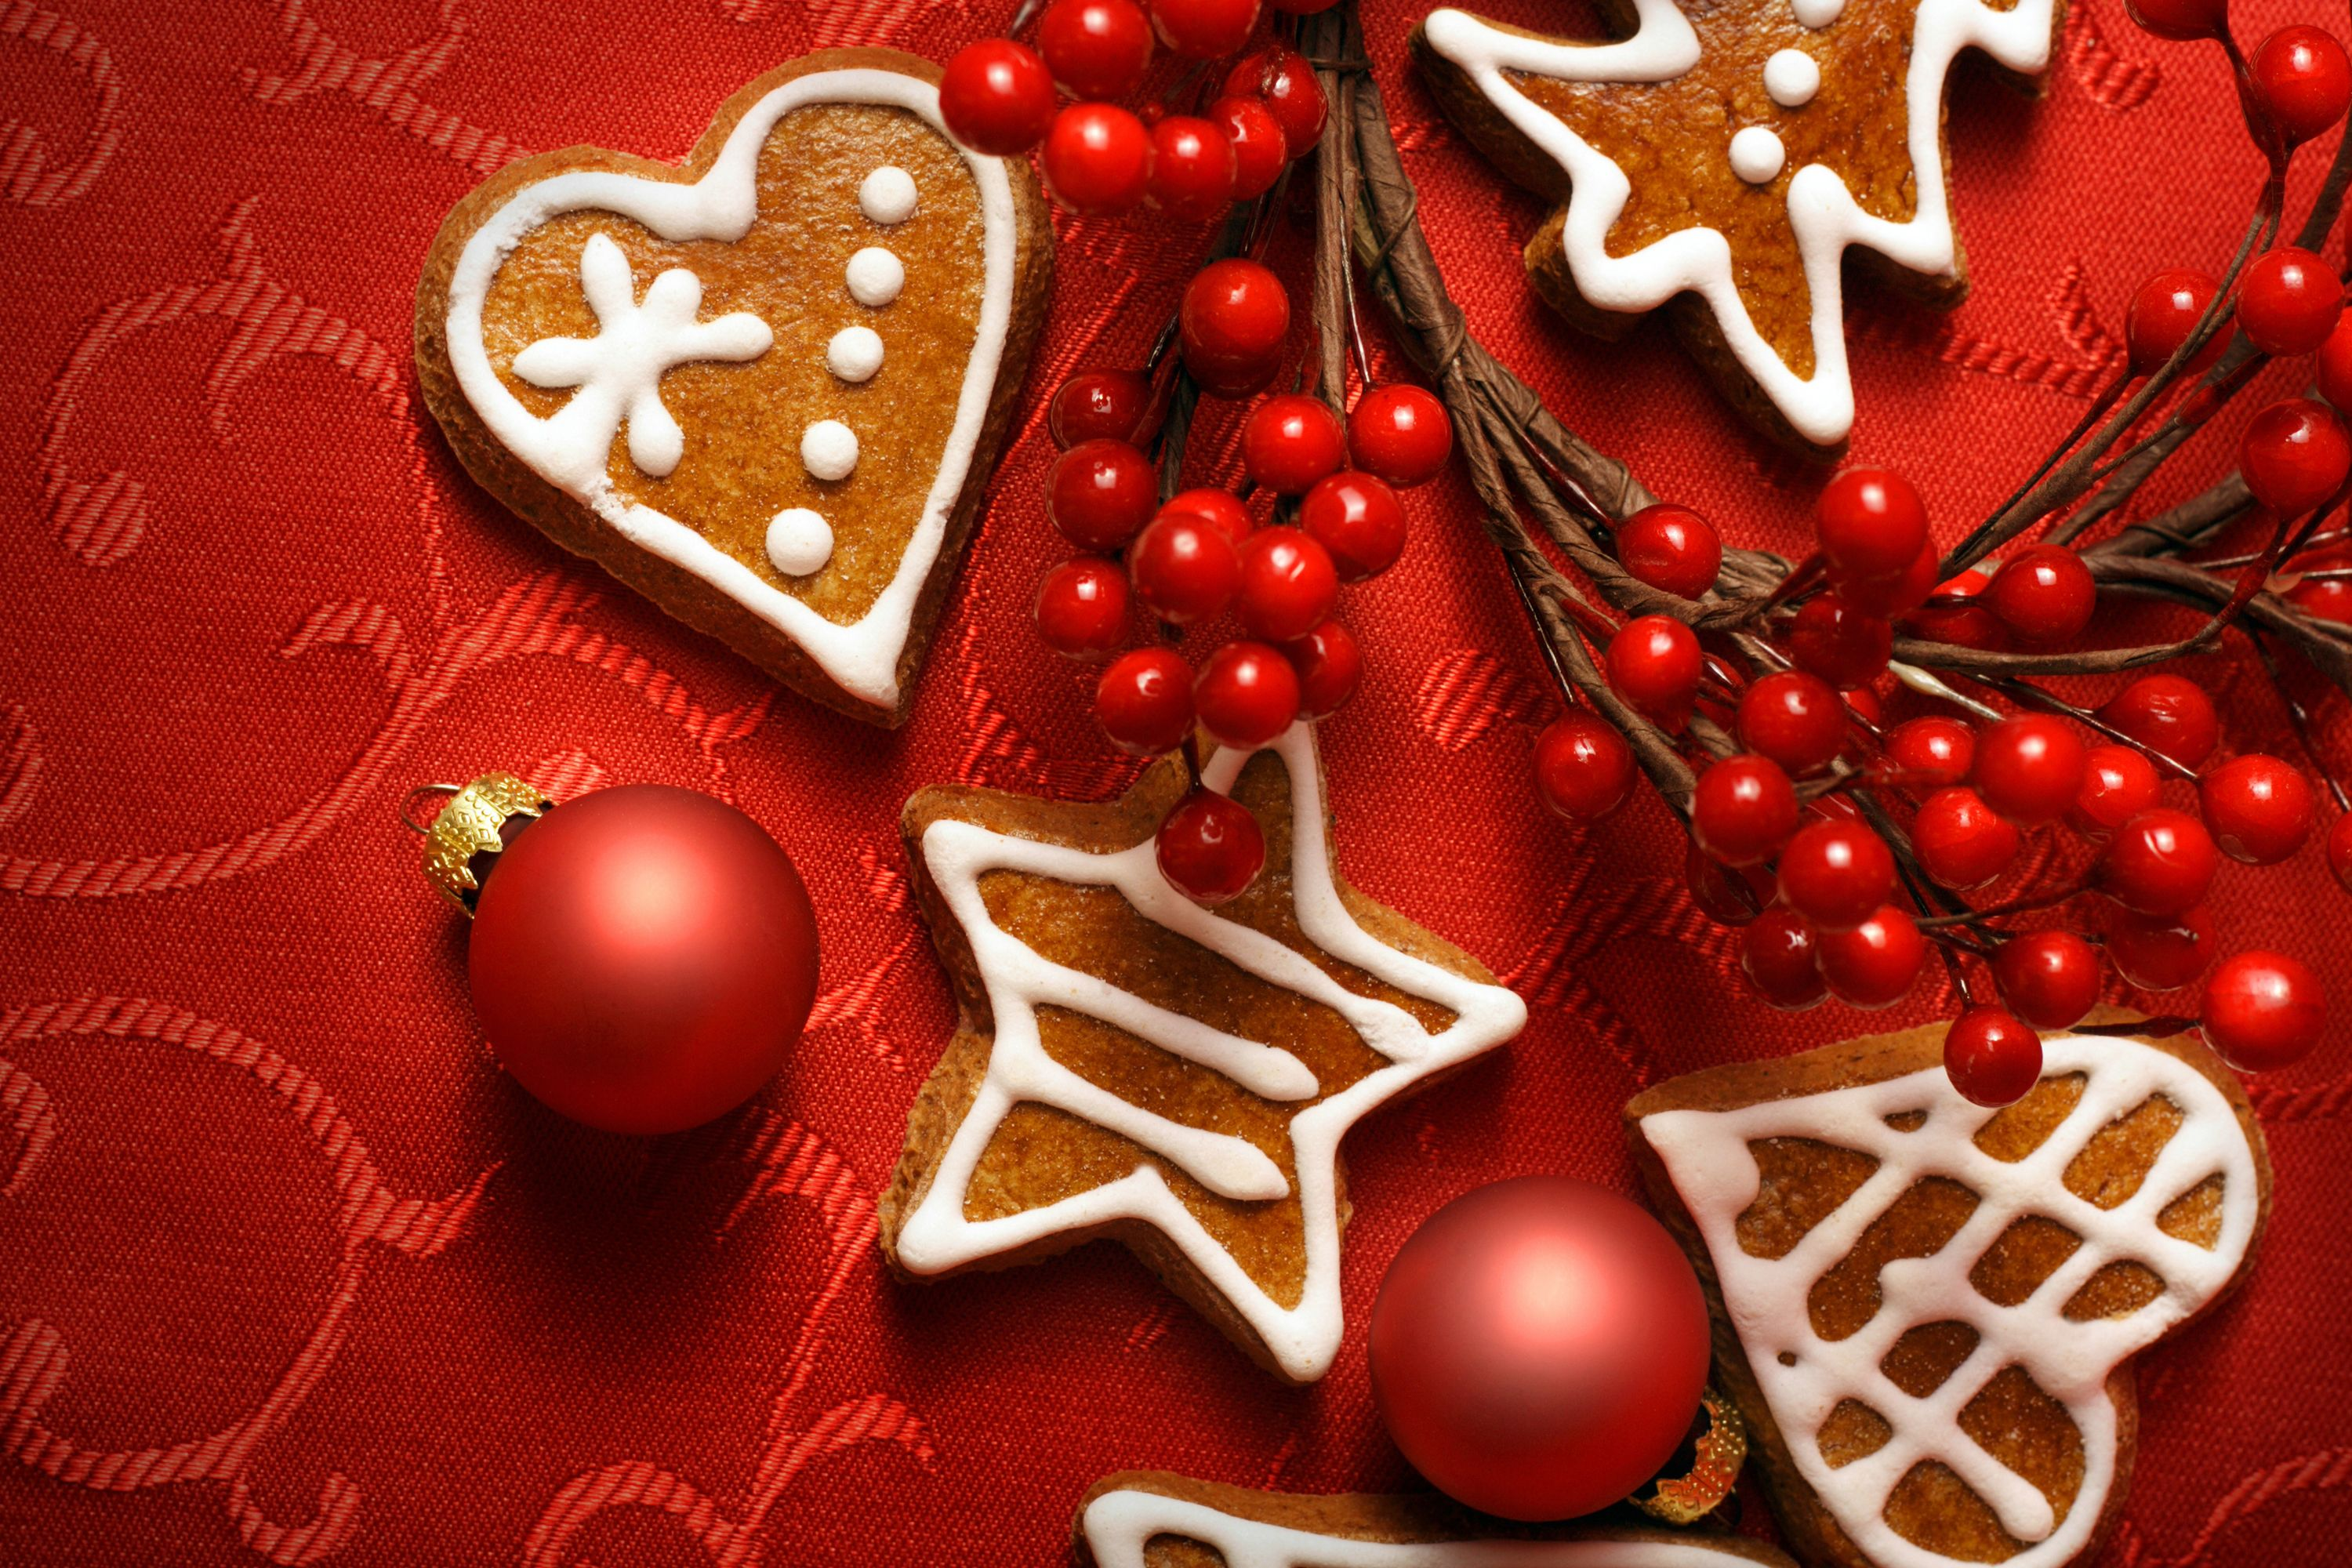 New Year, Christmas, Toys, cookies - HD wallpaper desktop backgrounds